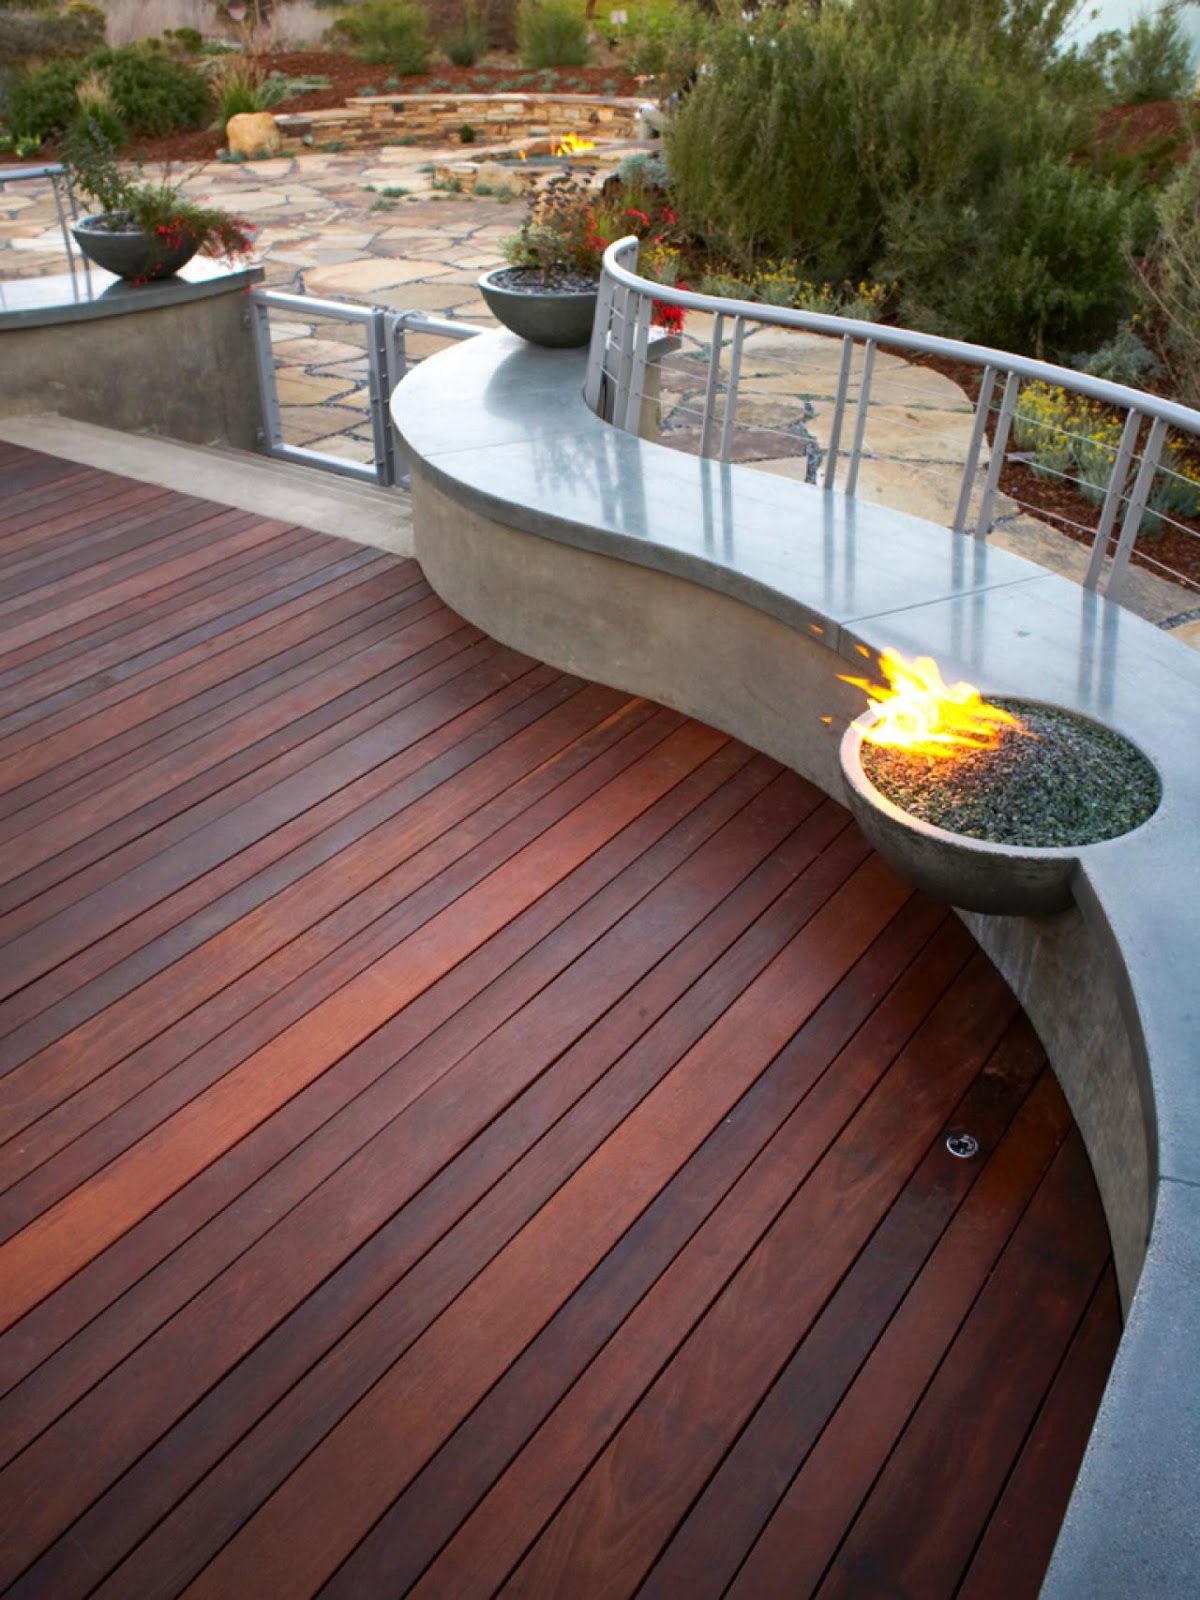 Metal fire pit on wood deck - Seamless Patio Fire Pit Bench Design